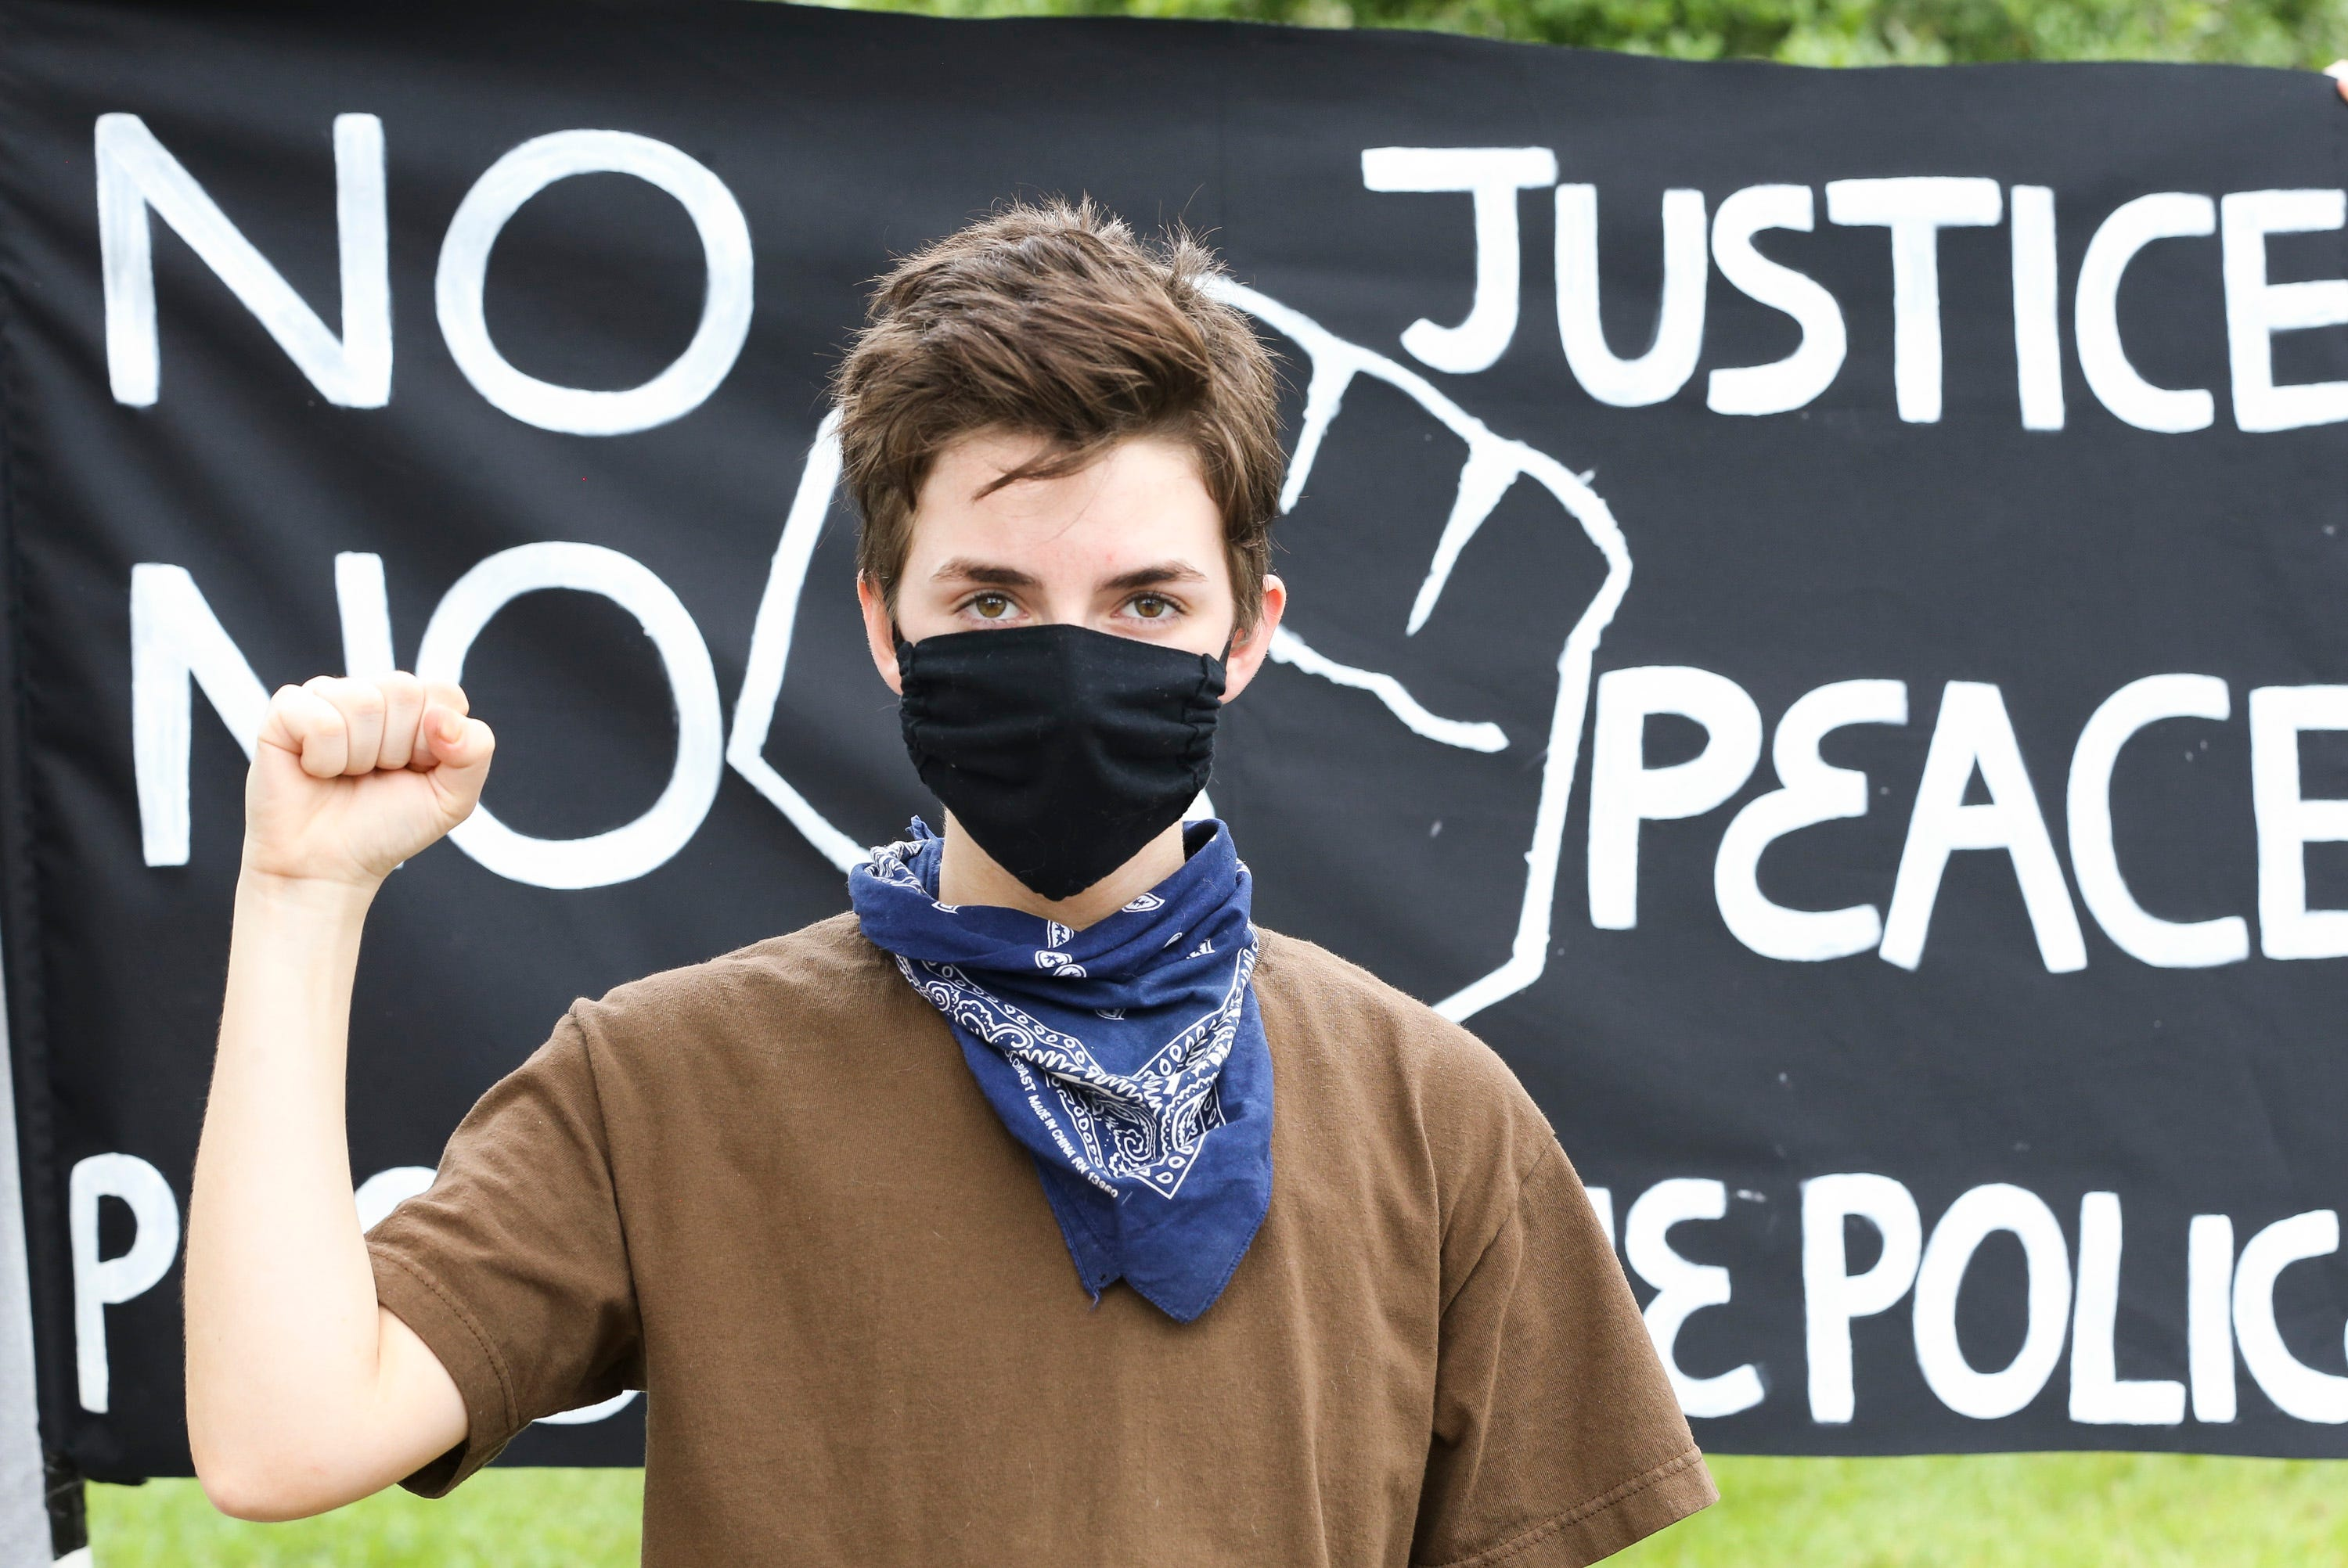 """Nico Rovito,16, of Fort Pierce, attends the peace and justice demonstration at Port St. Lucie City Hall on Saturday, June 6, 2020, in Port St. Lucie. Port St. Lucie police were in the area for the event in a show of unity. The gathering was a call for justice after the death of George Floyd in Minneapolis police custody on May 25. """"I want to use the power that I have and the privilege that I have to help stop the oppression that is going on,"""" said Rovito."""